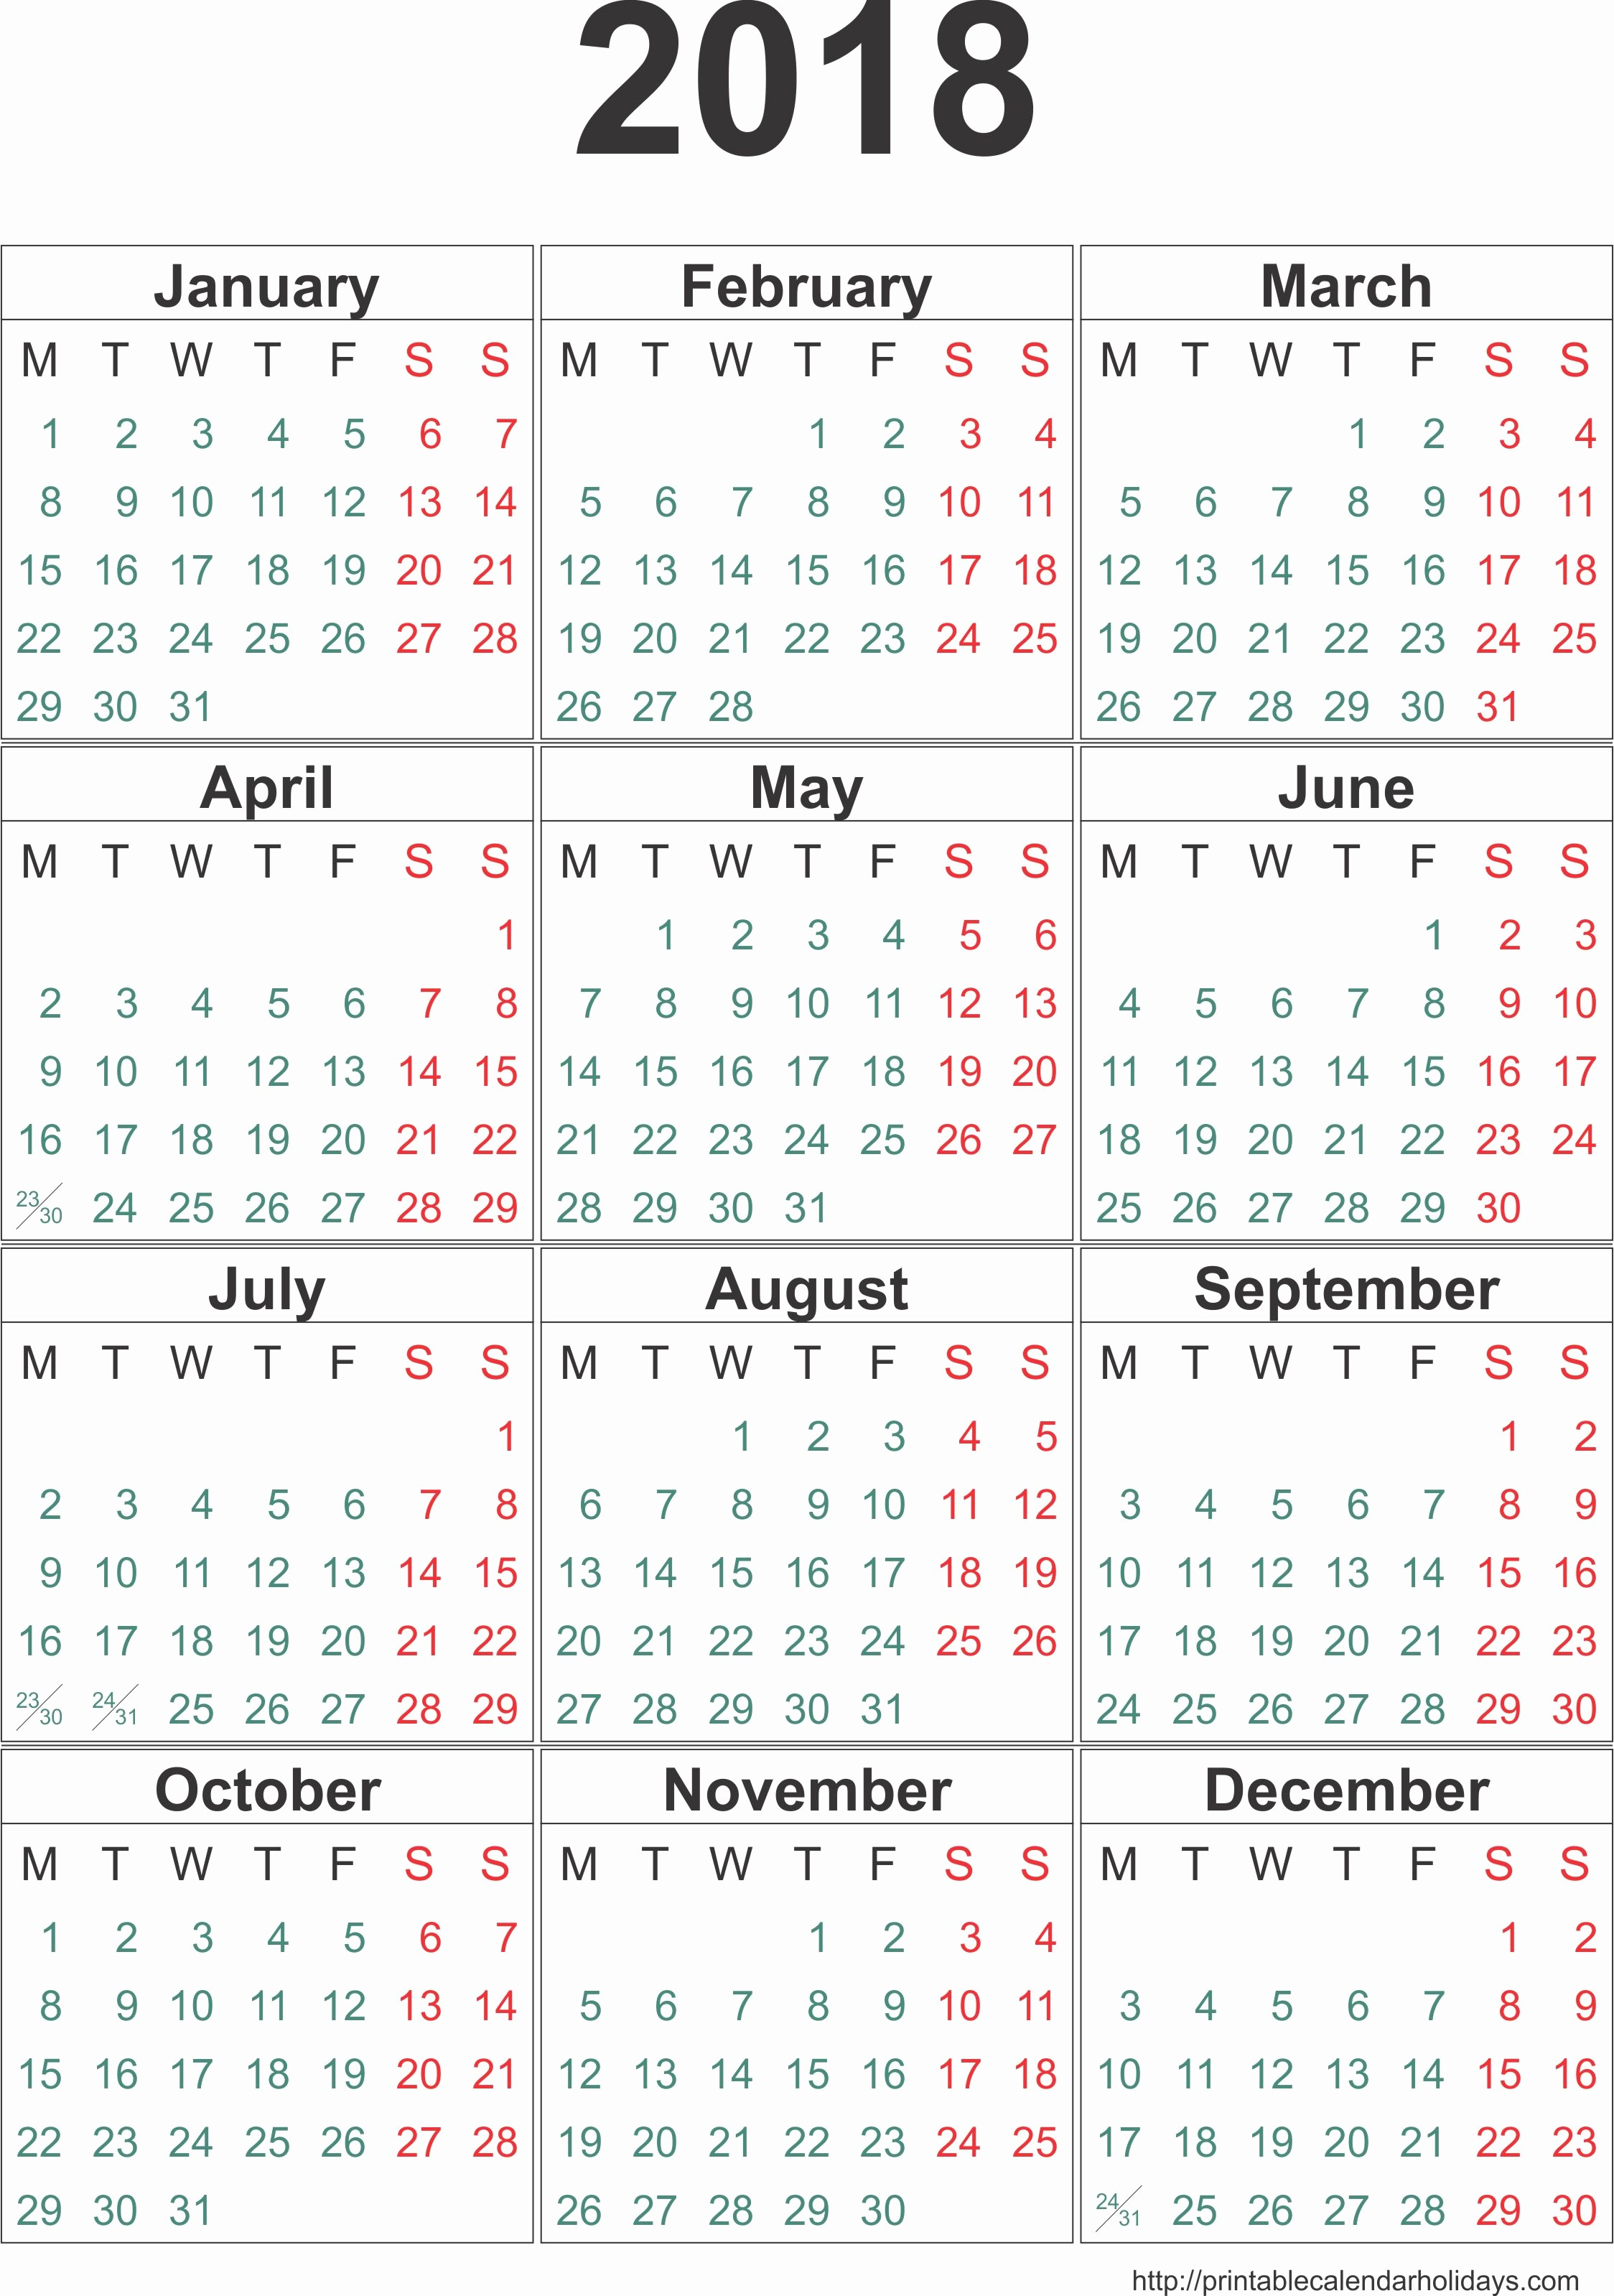 2018 Month by Month Calendar New 2018 Monthly Calendar Template